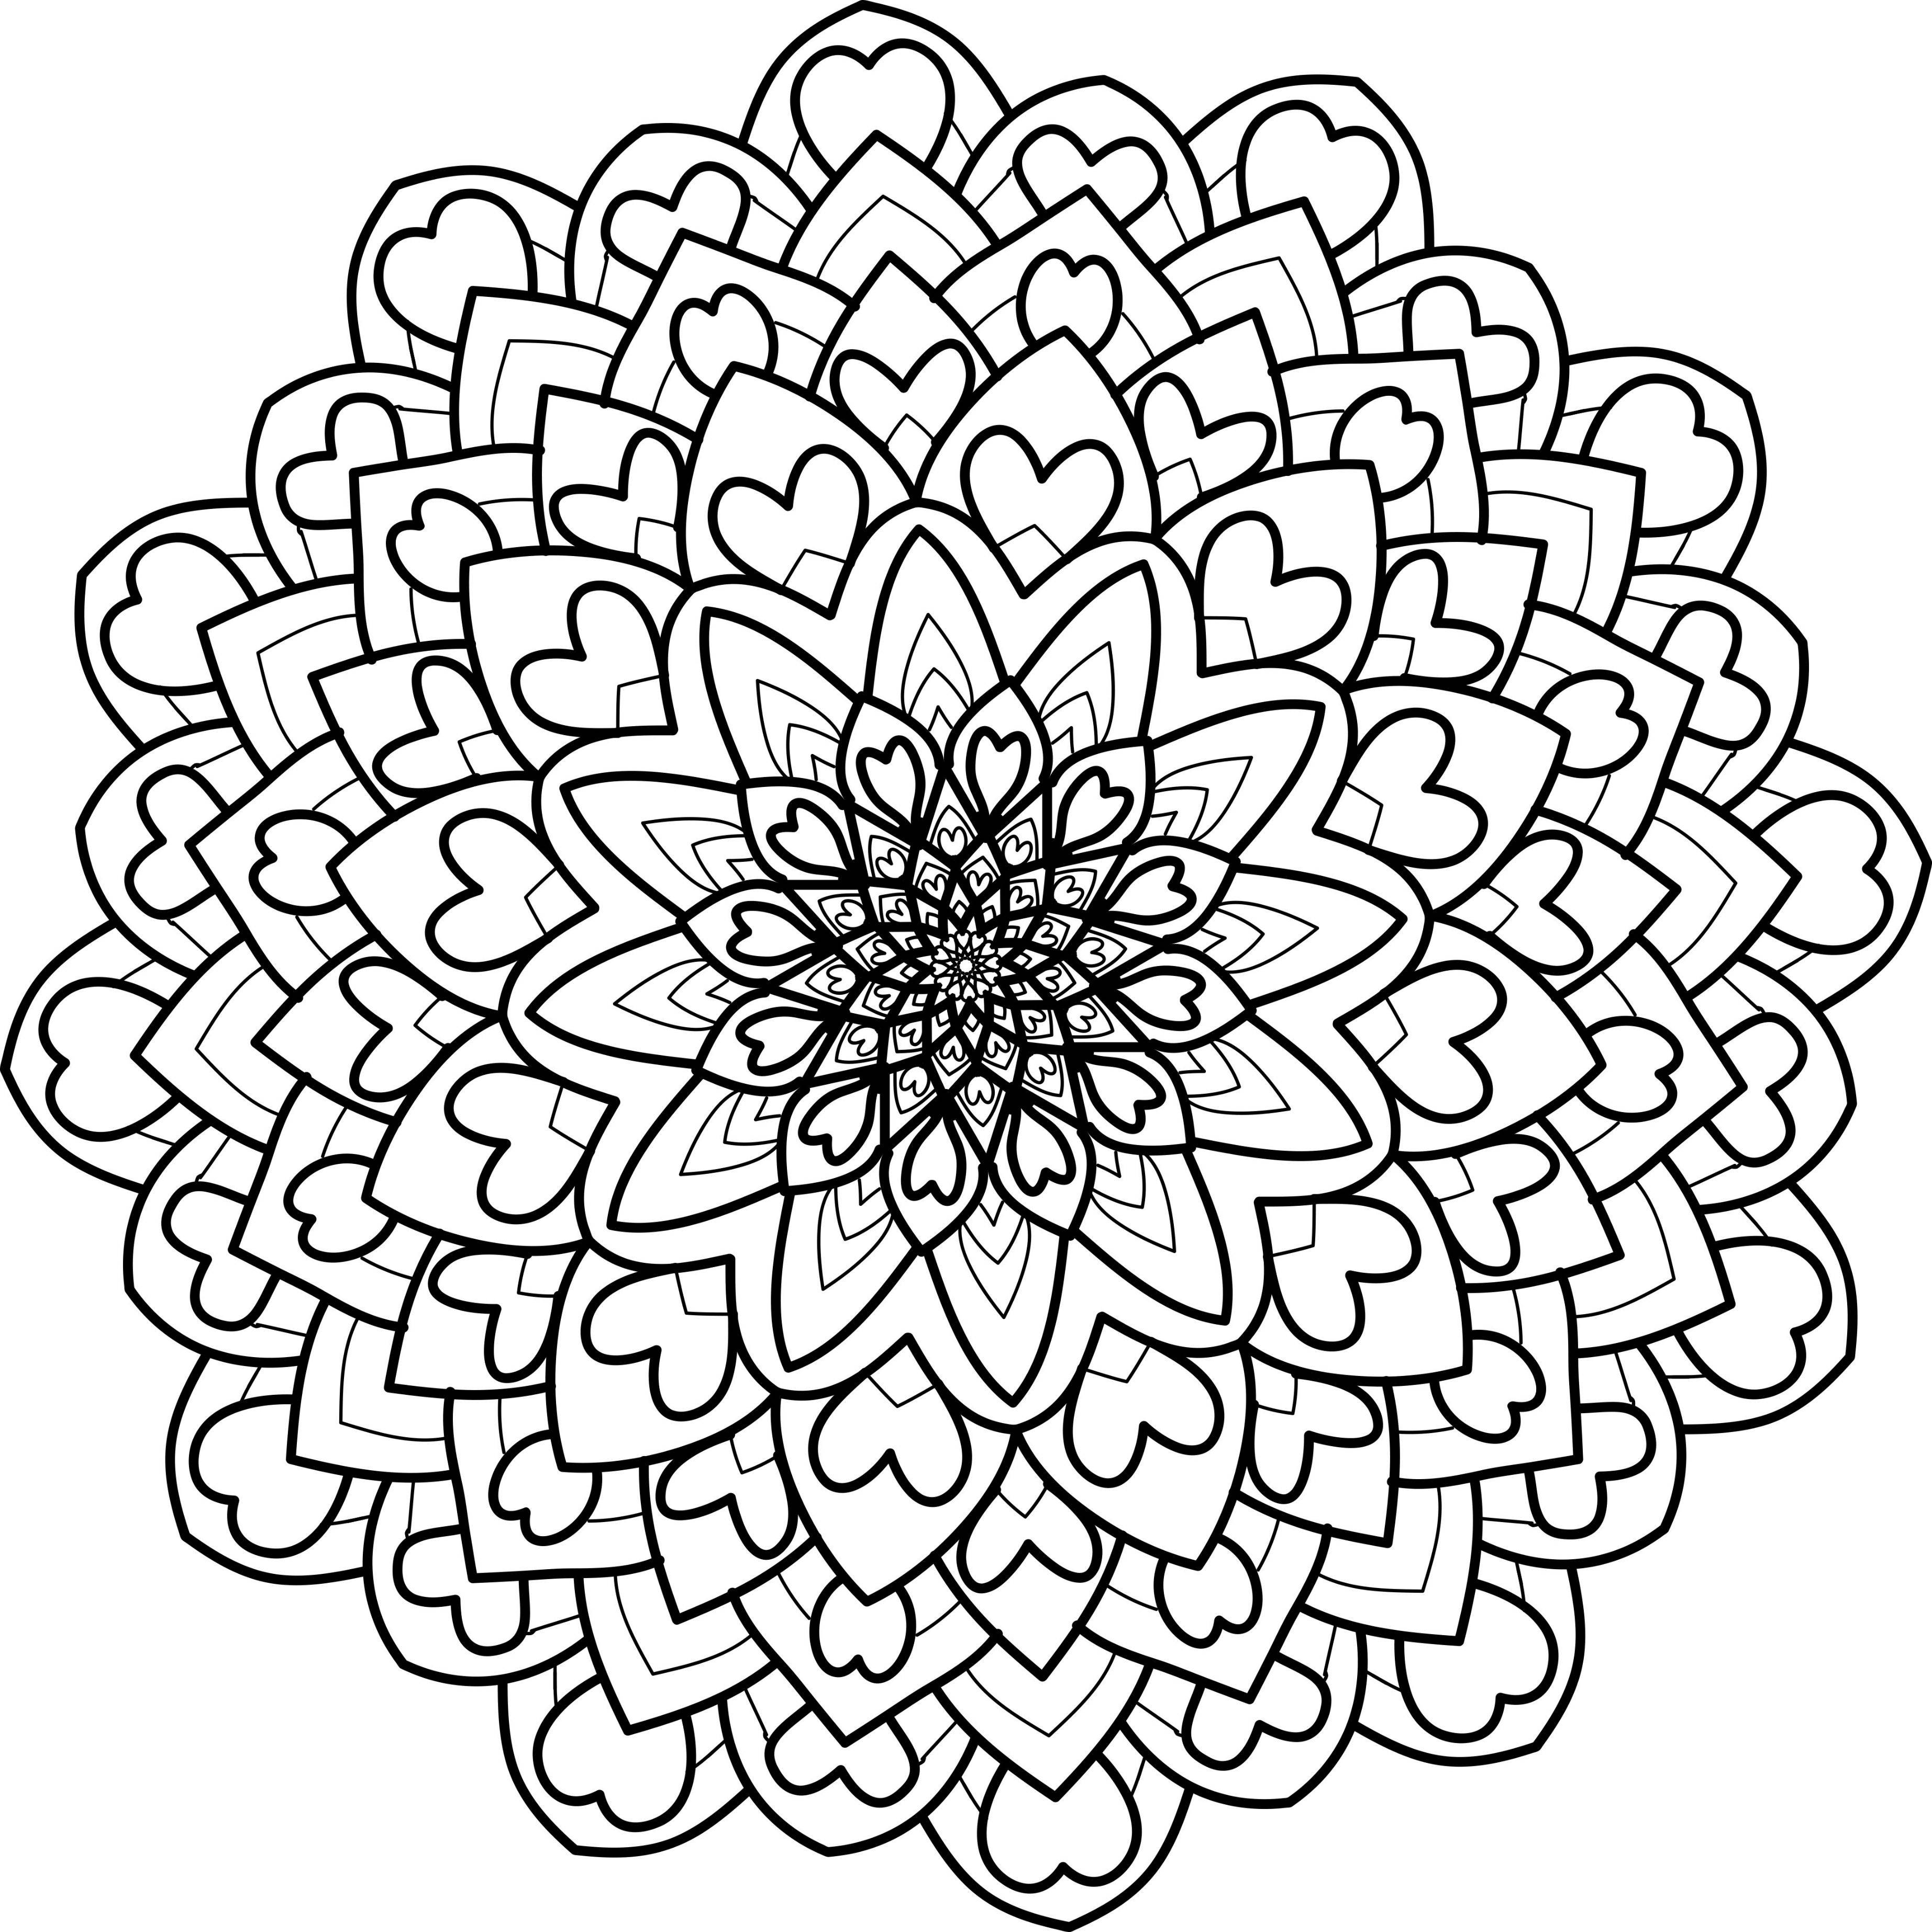 3690x3690 Coloring Pages That You Can Print Out